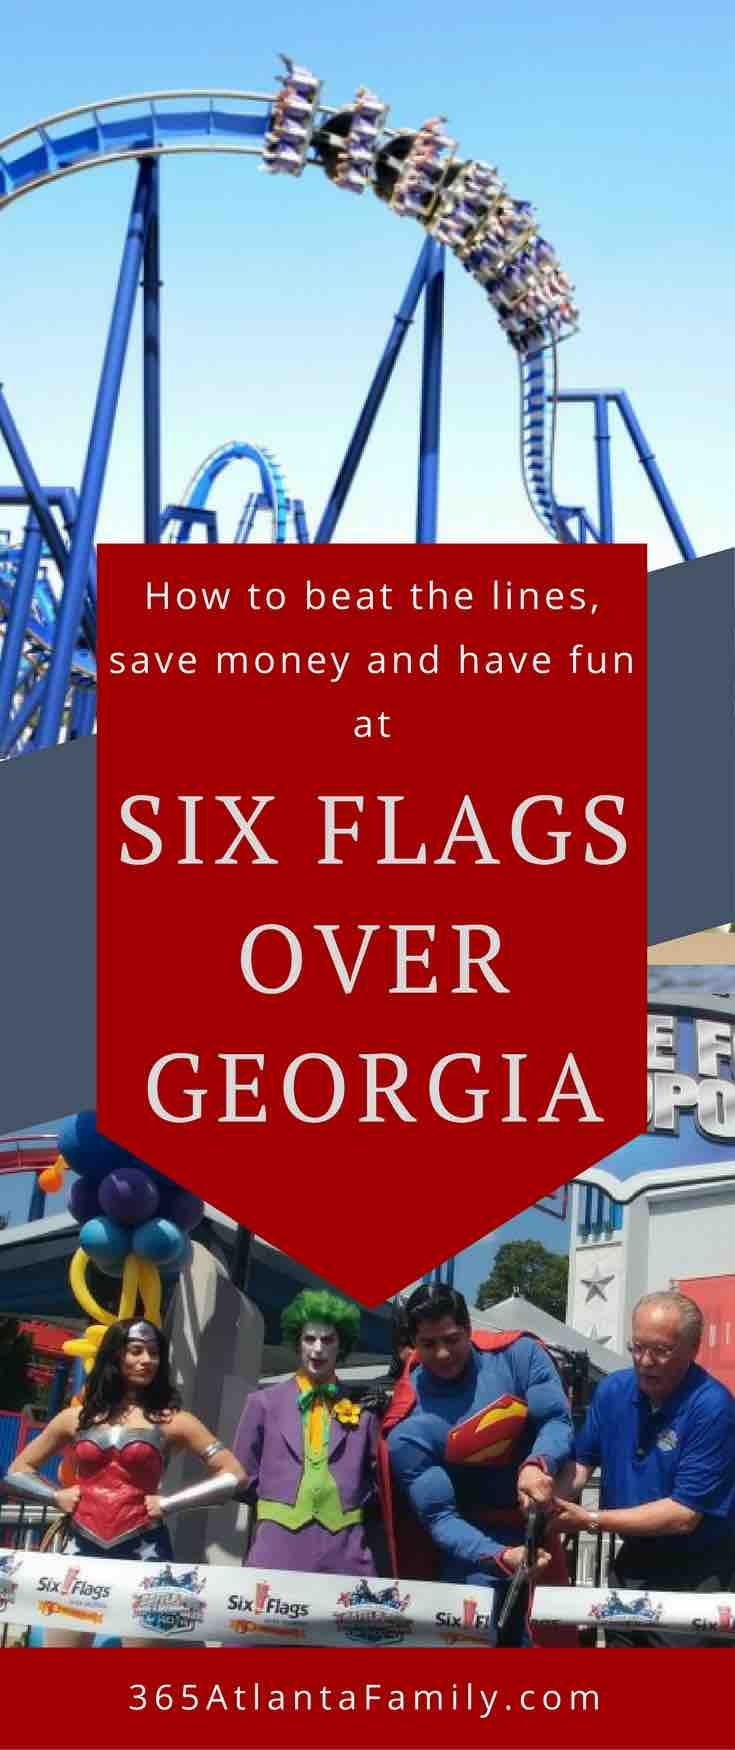 Six Flags Over Georgia Beat The Lines Discounts More With Images Georgia Vacation Six Flags Georgia Travel